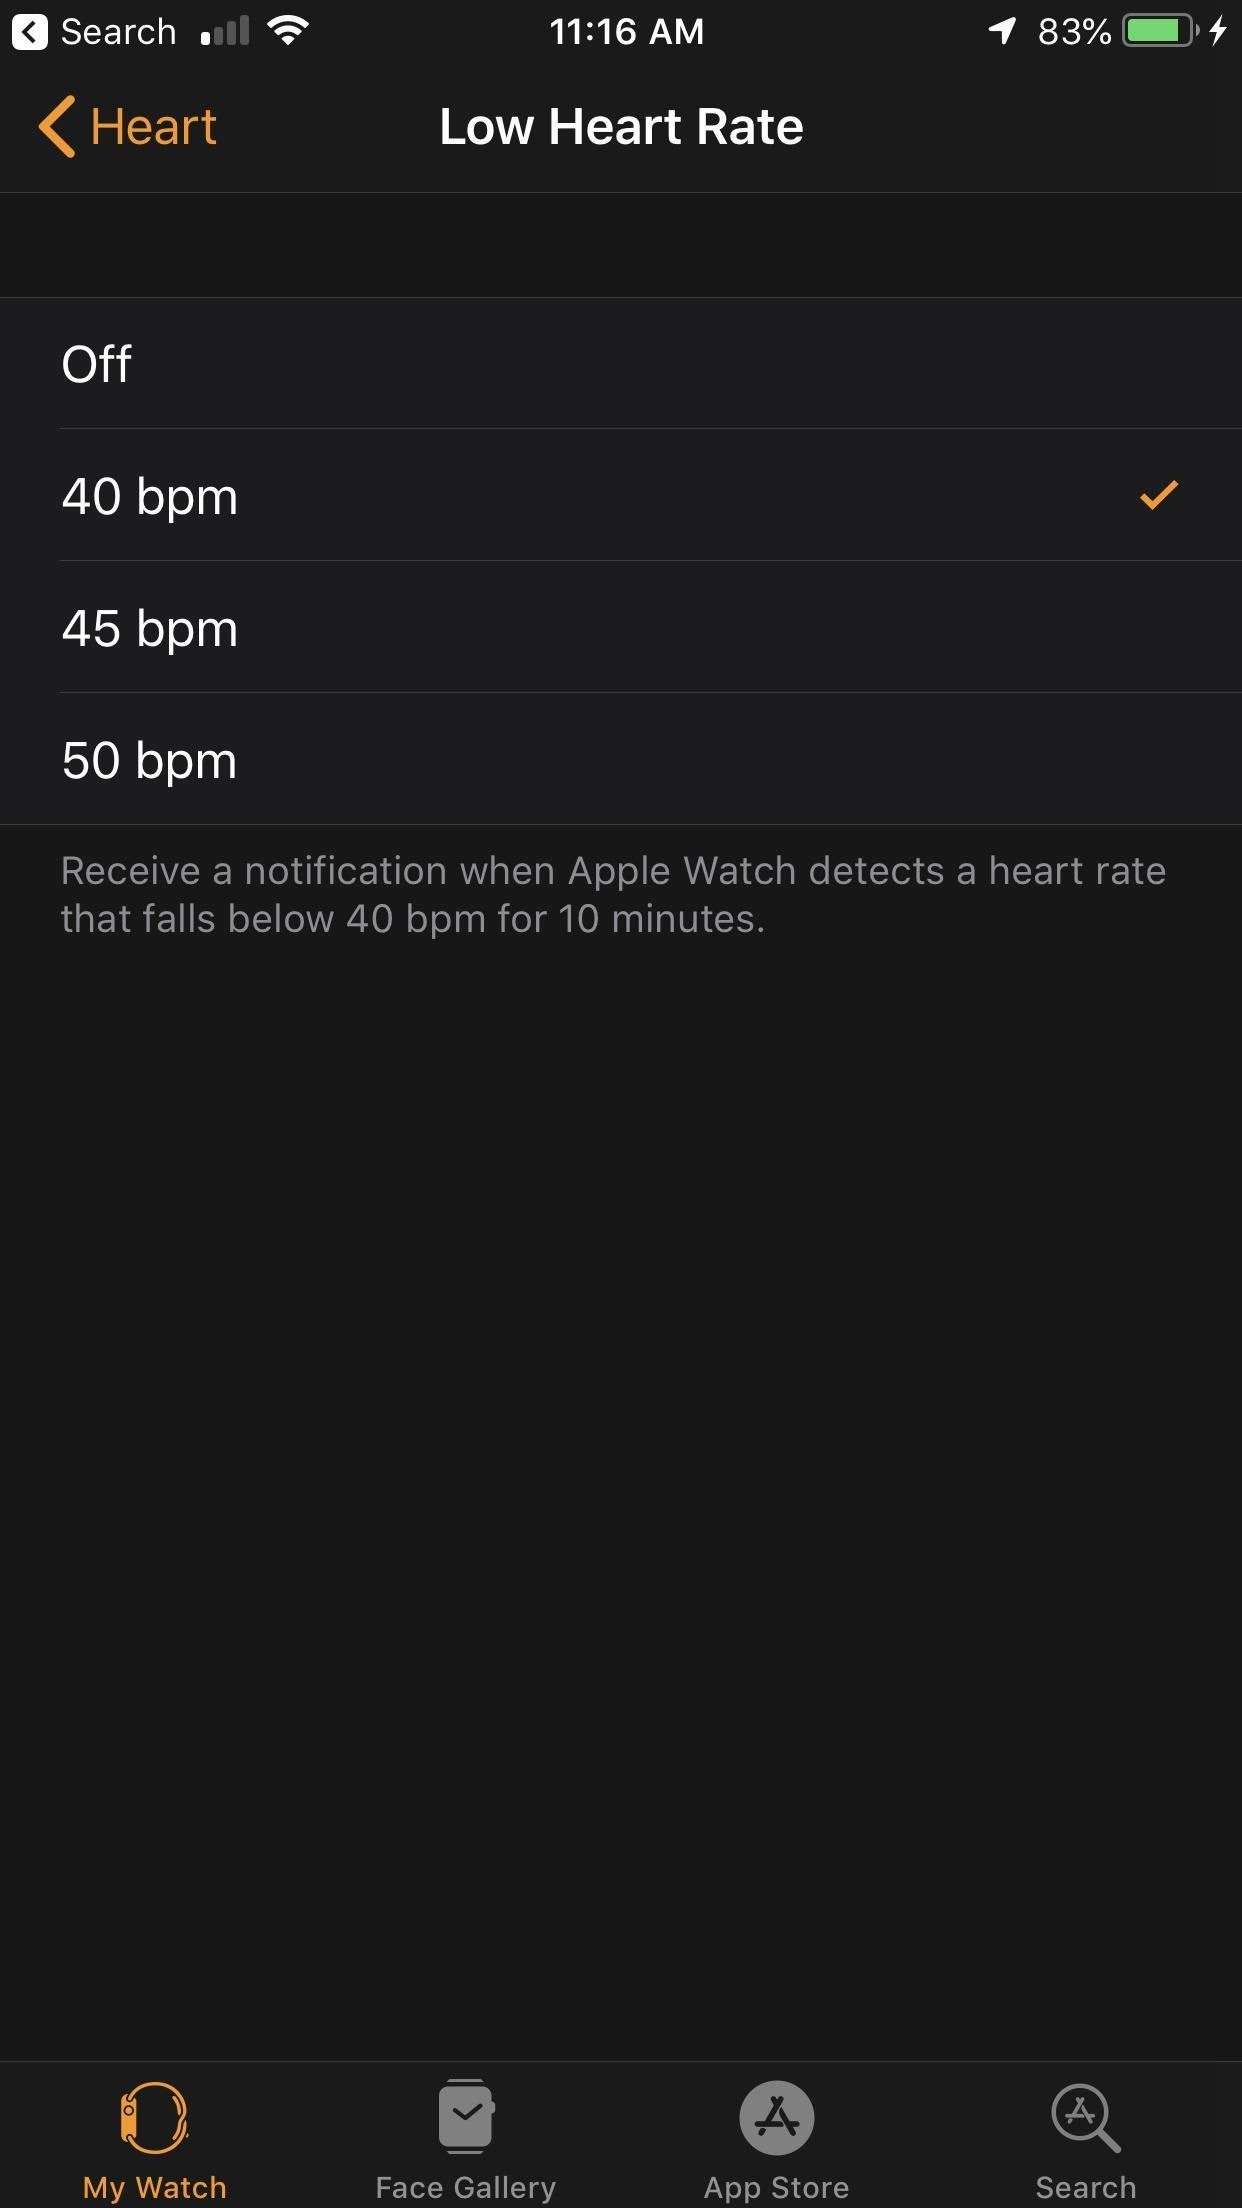 What to Do When You Get a Low Heart Rate Notification on